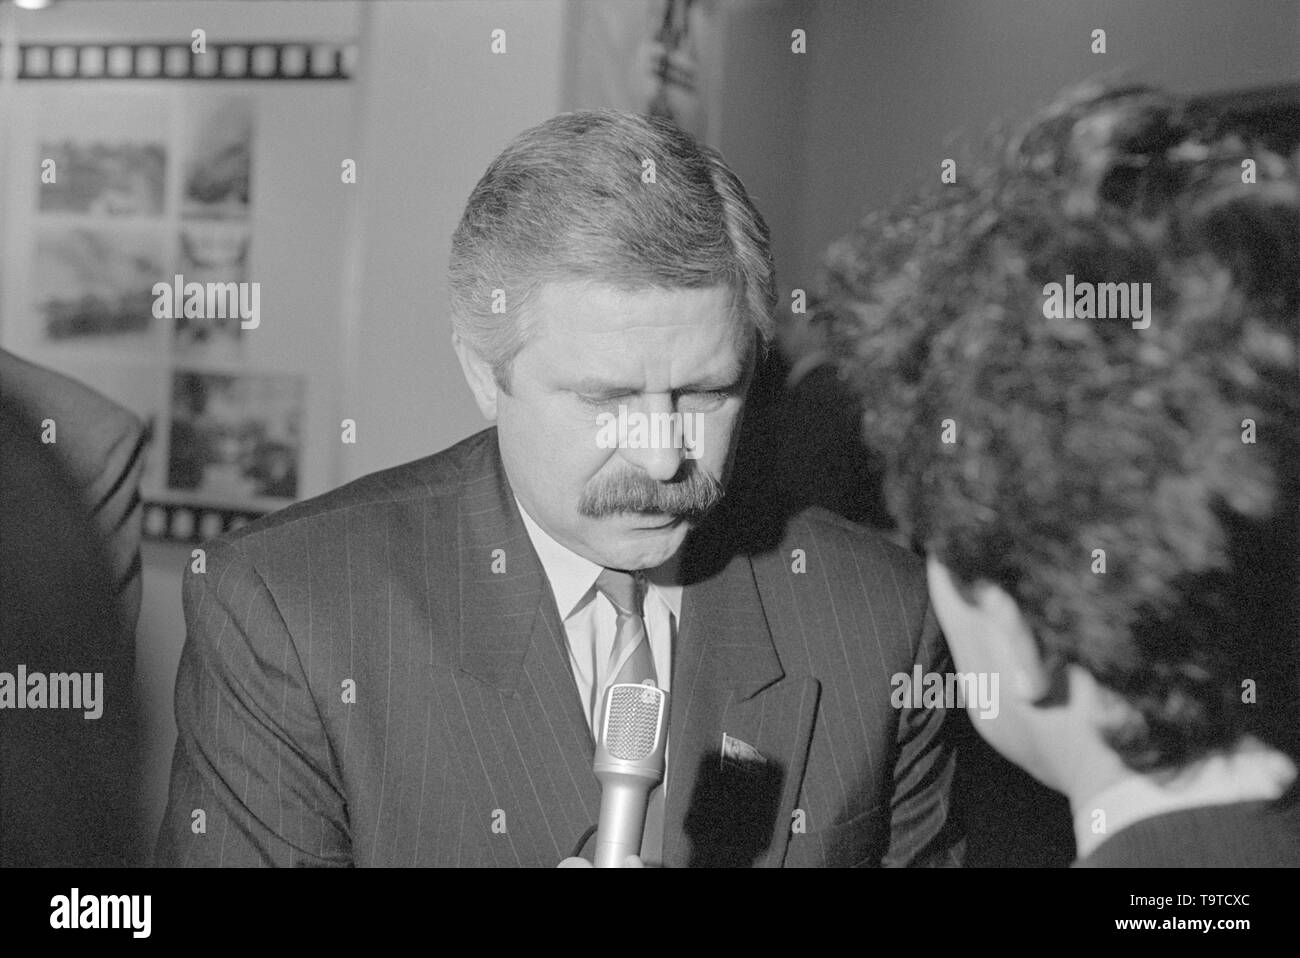 Moscow, Russia - March 28, 1991: People's deputy of the Russian SFSR Alexander Vladimirovich Rutskoy talks to journalist at 3d extraordinary Congress of people's deputies of russian RSFSR. - Stock Image